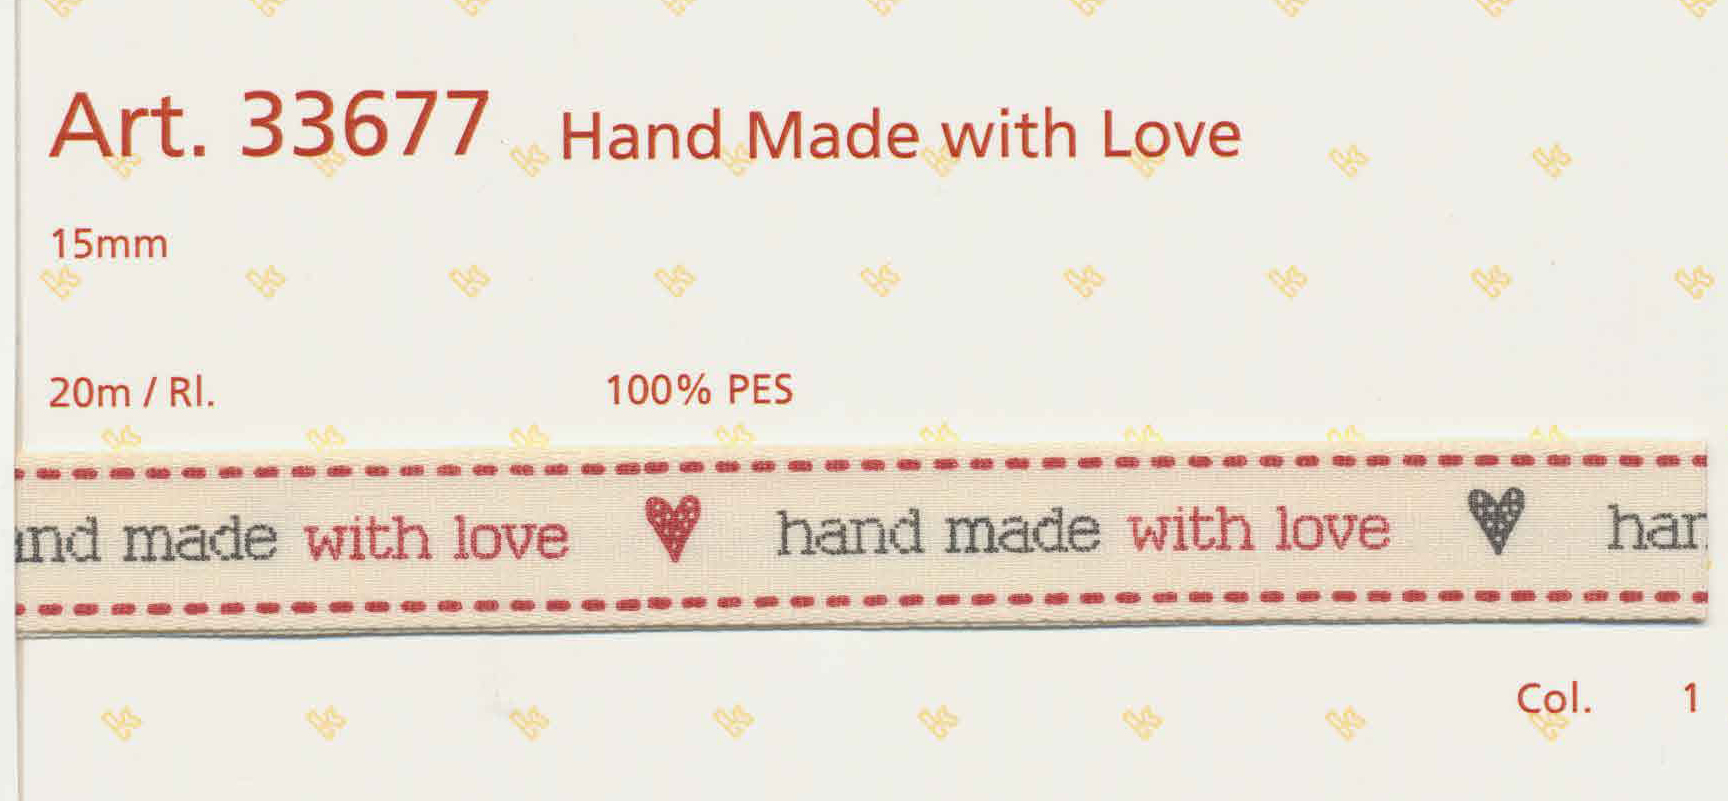 Hand Made with Love 15mm 33677